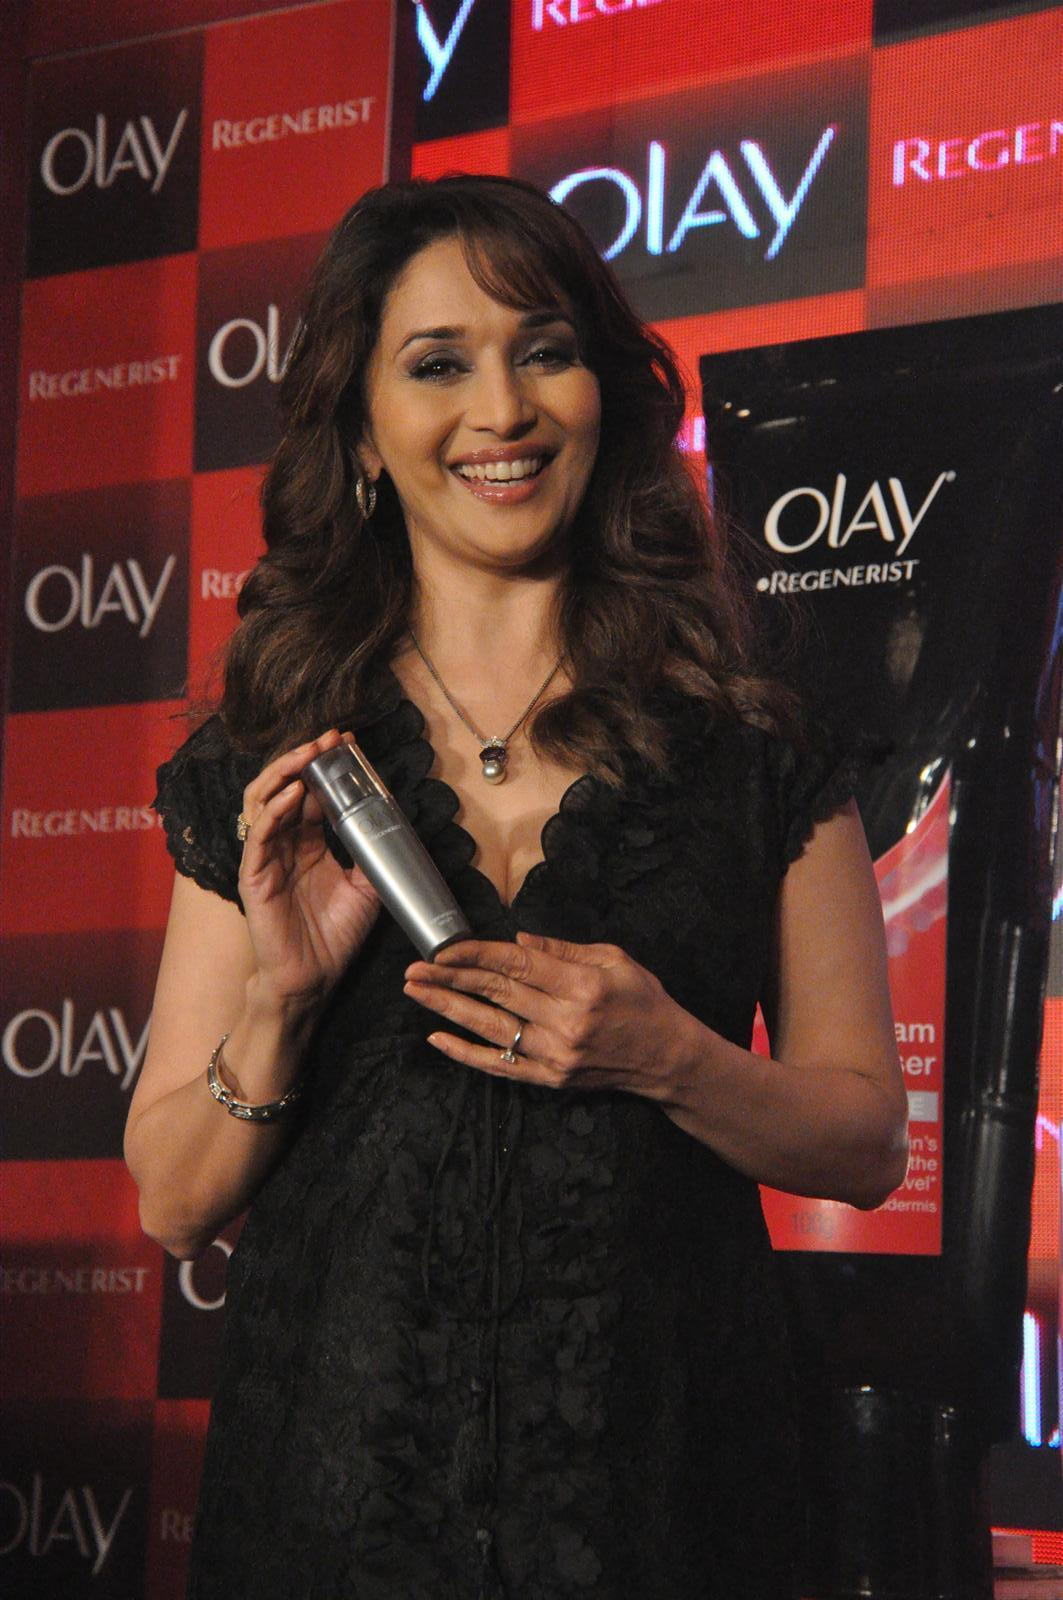 Madhuri Dixit Looks Sexy At The Launch Of Olay Regenerist